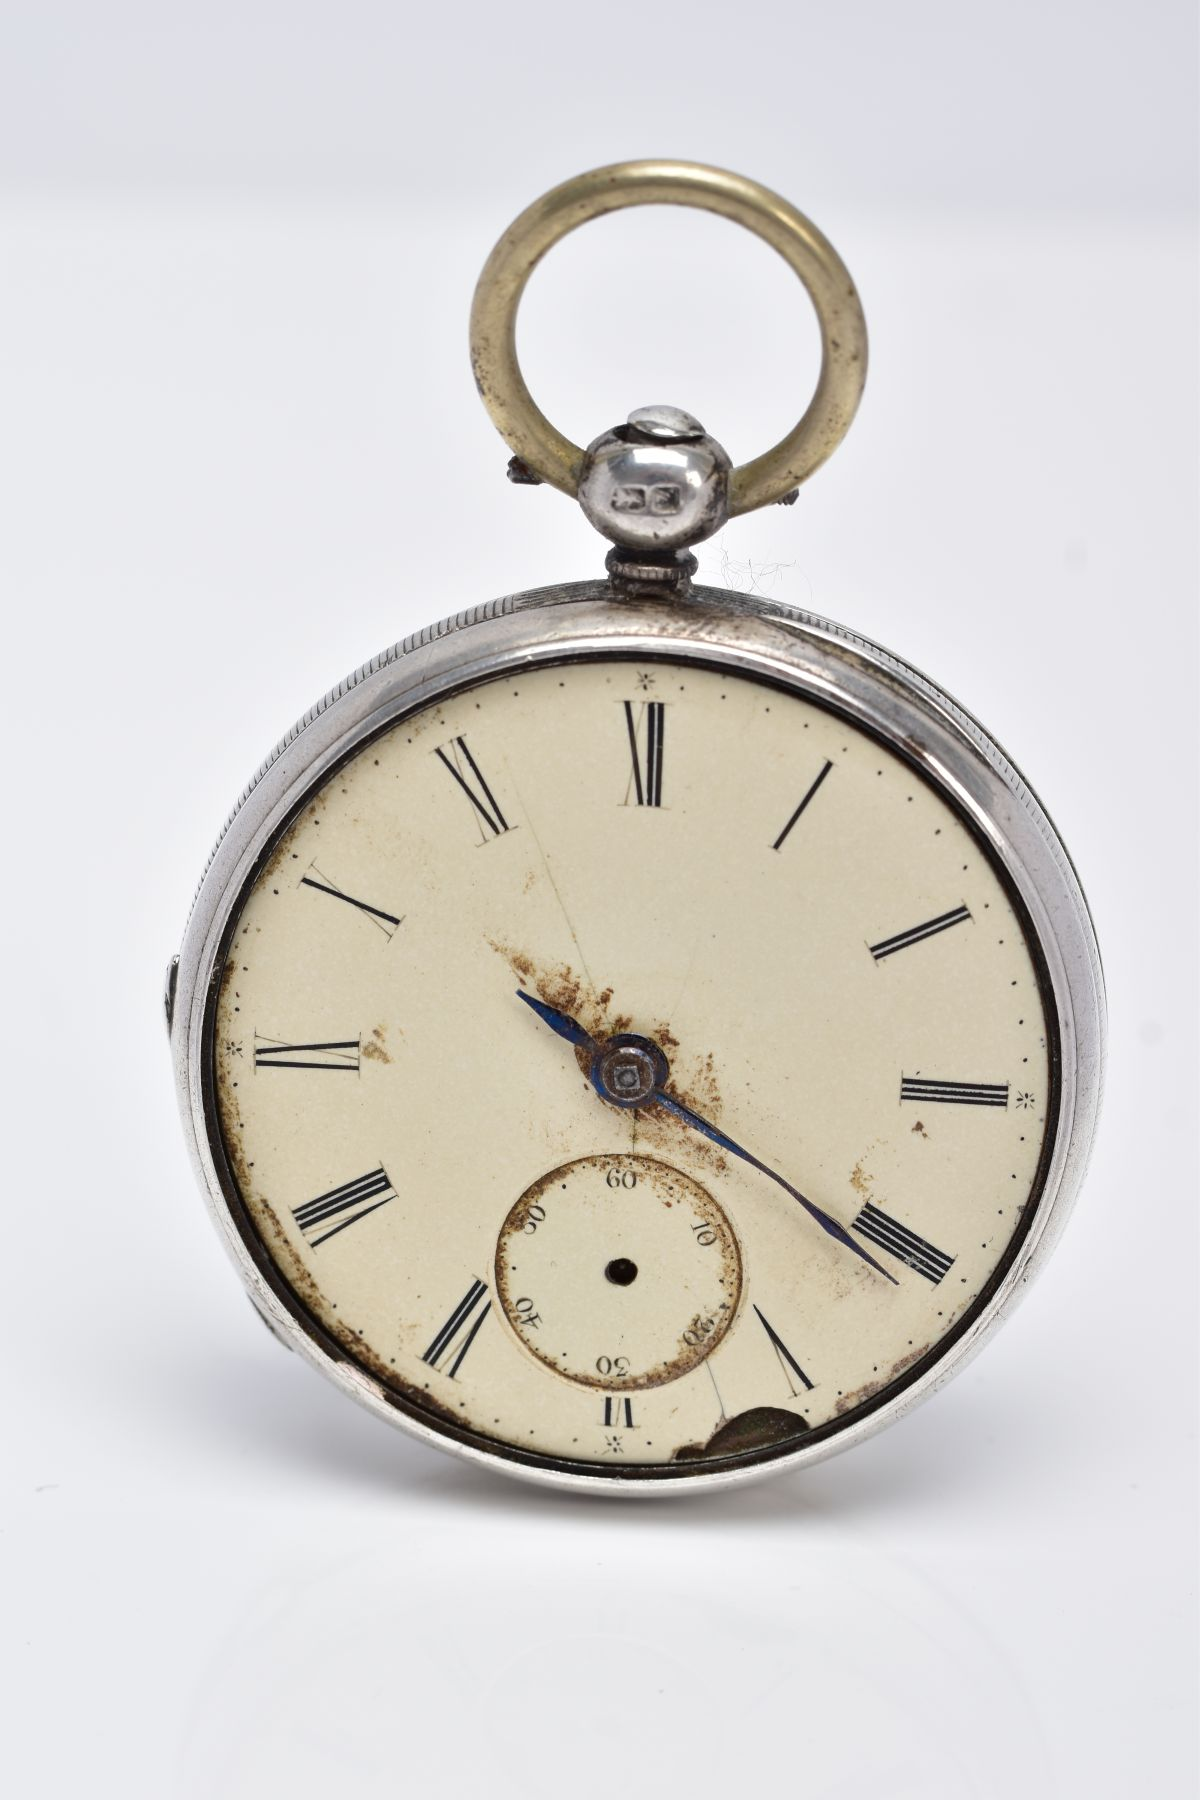 A SILVER OPEN FACED POCKET WATCH, AF, cream dial, Roman numerals, seconds subsidiary dial at the six